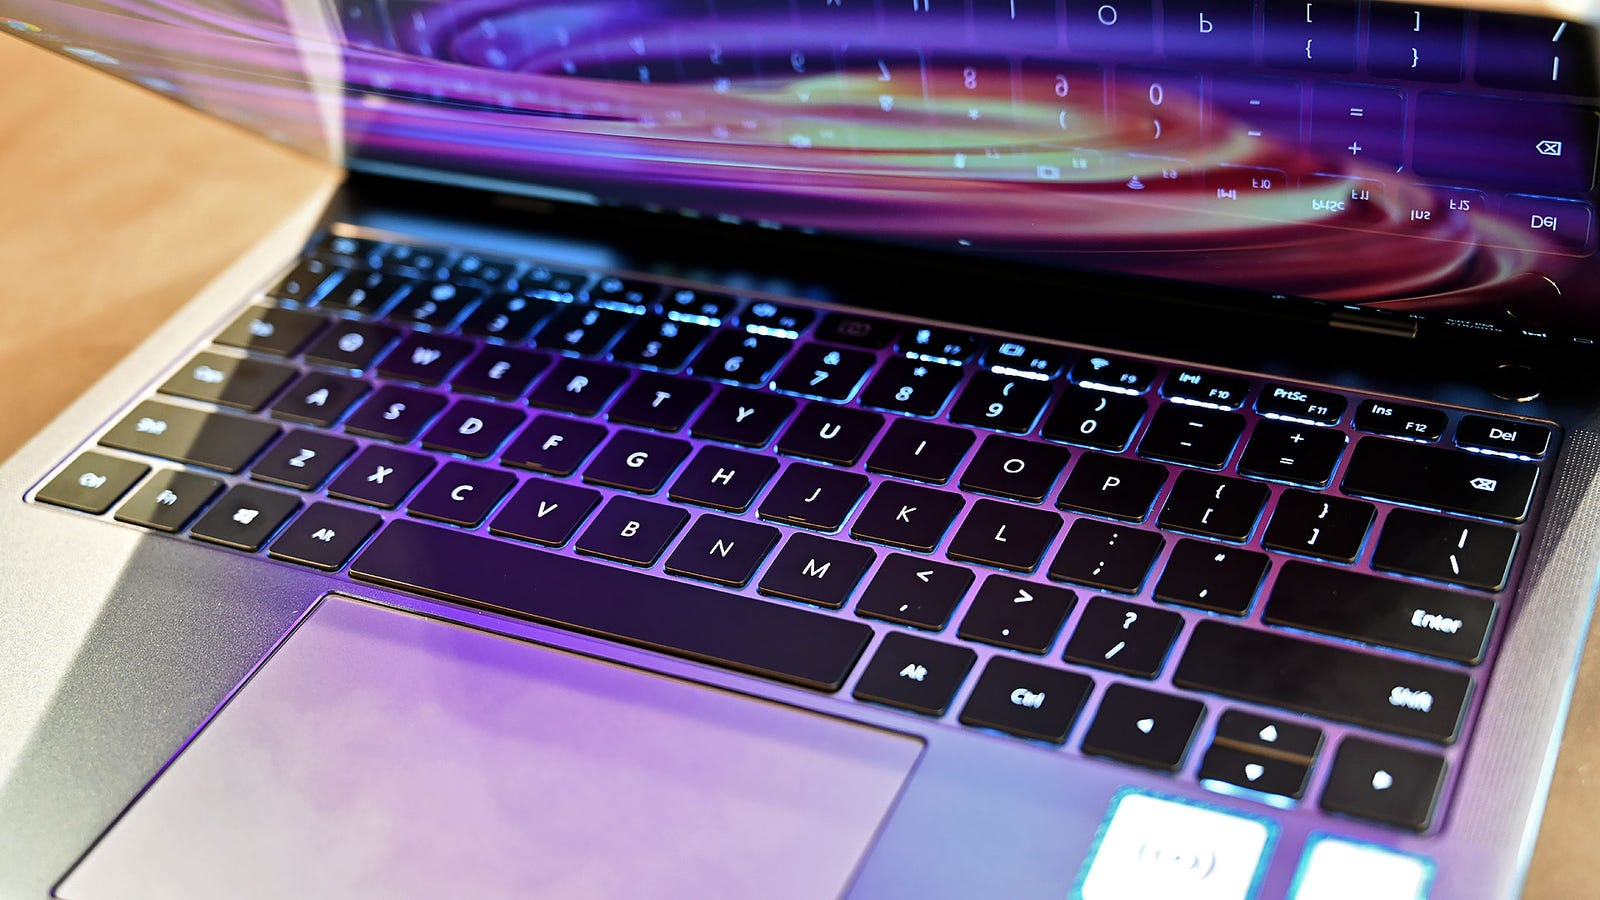 As expected on a laptop this expensive, the X Pro comes with backlit keys.